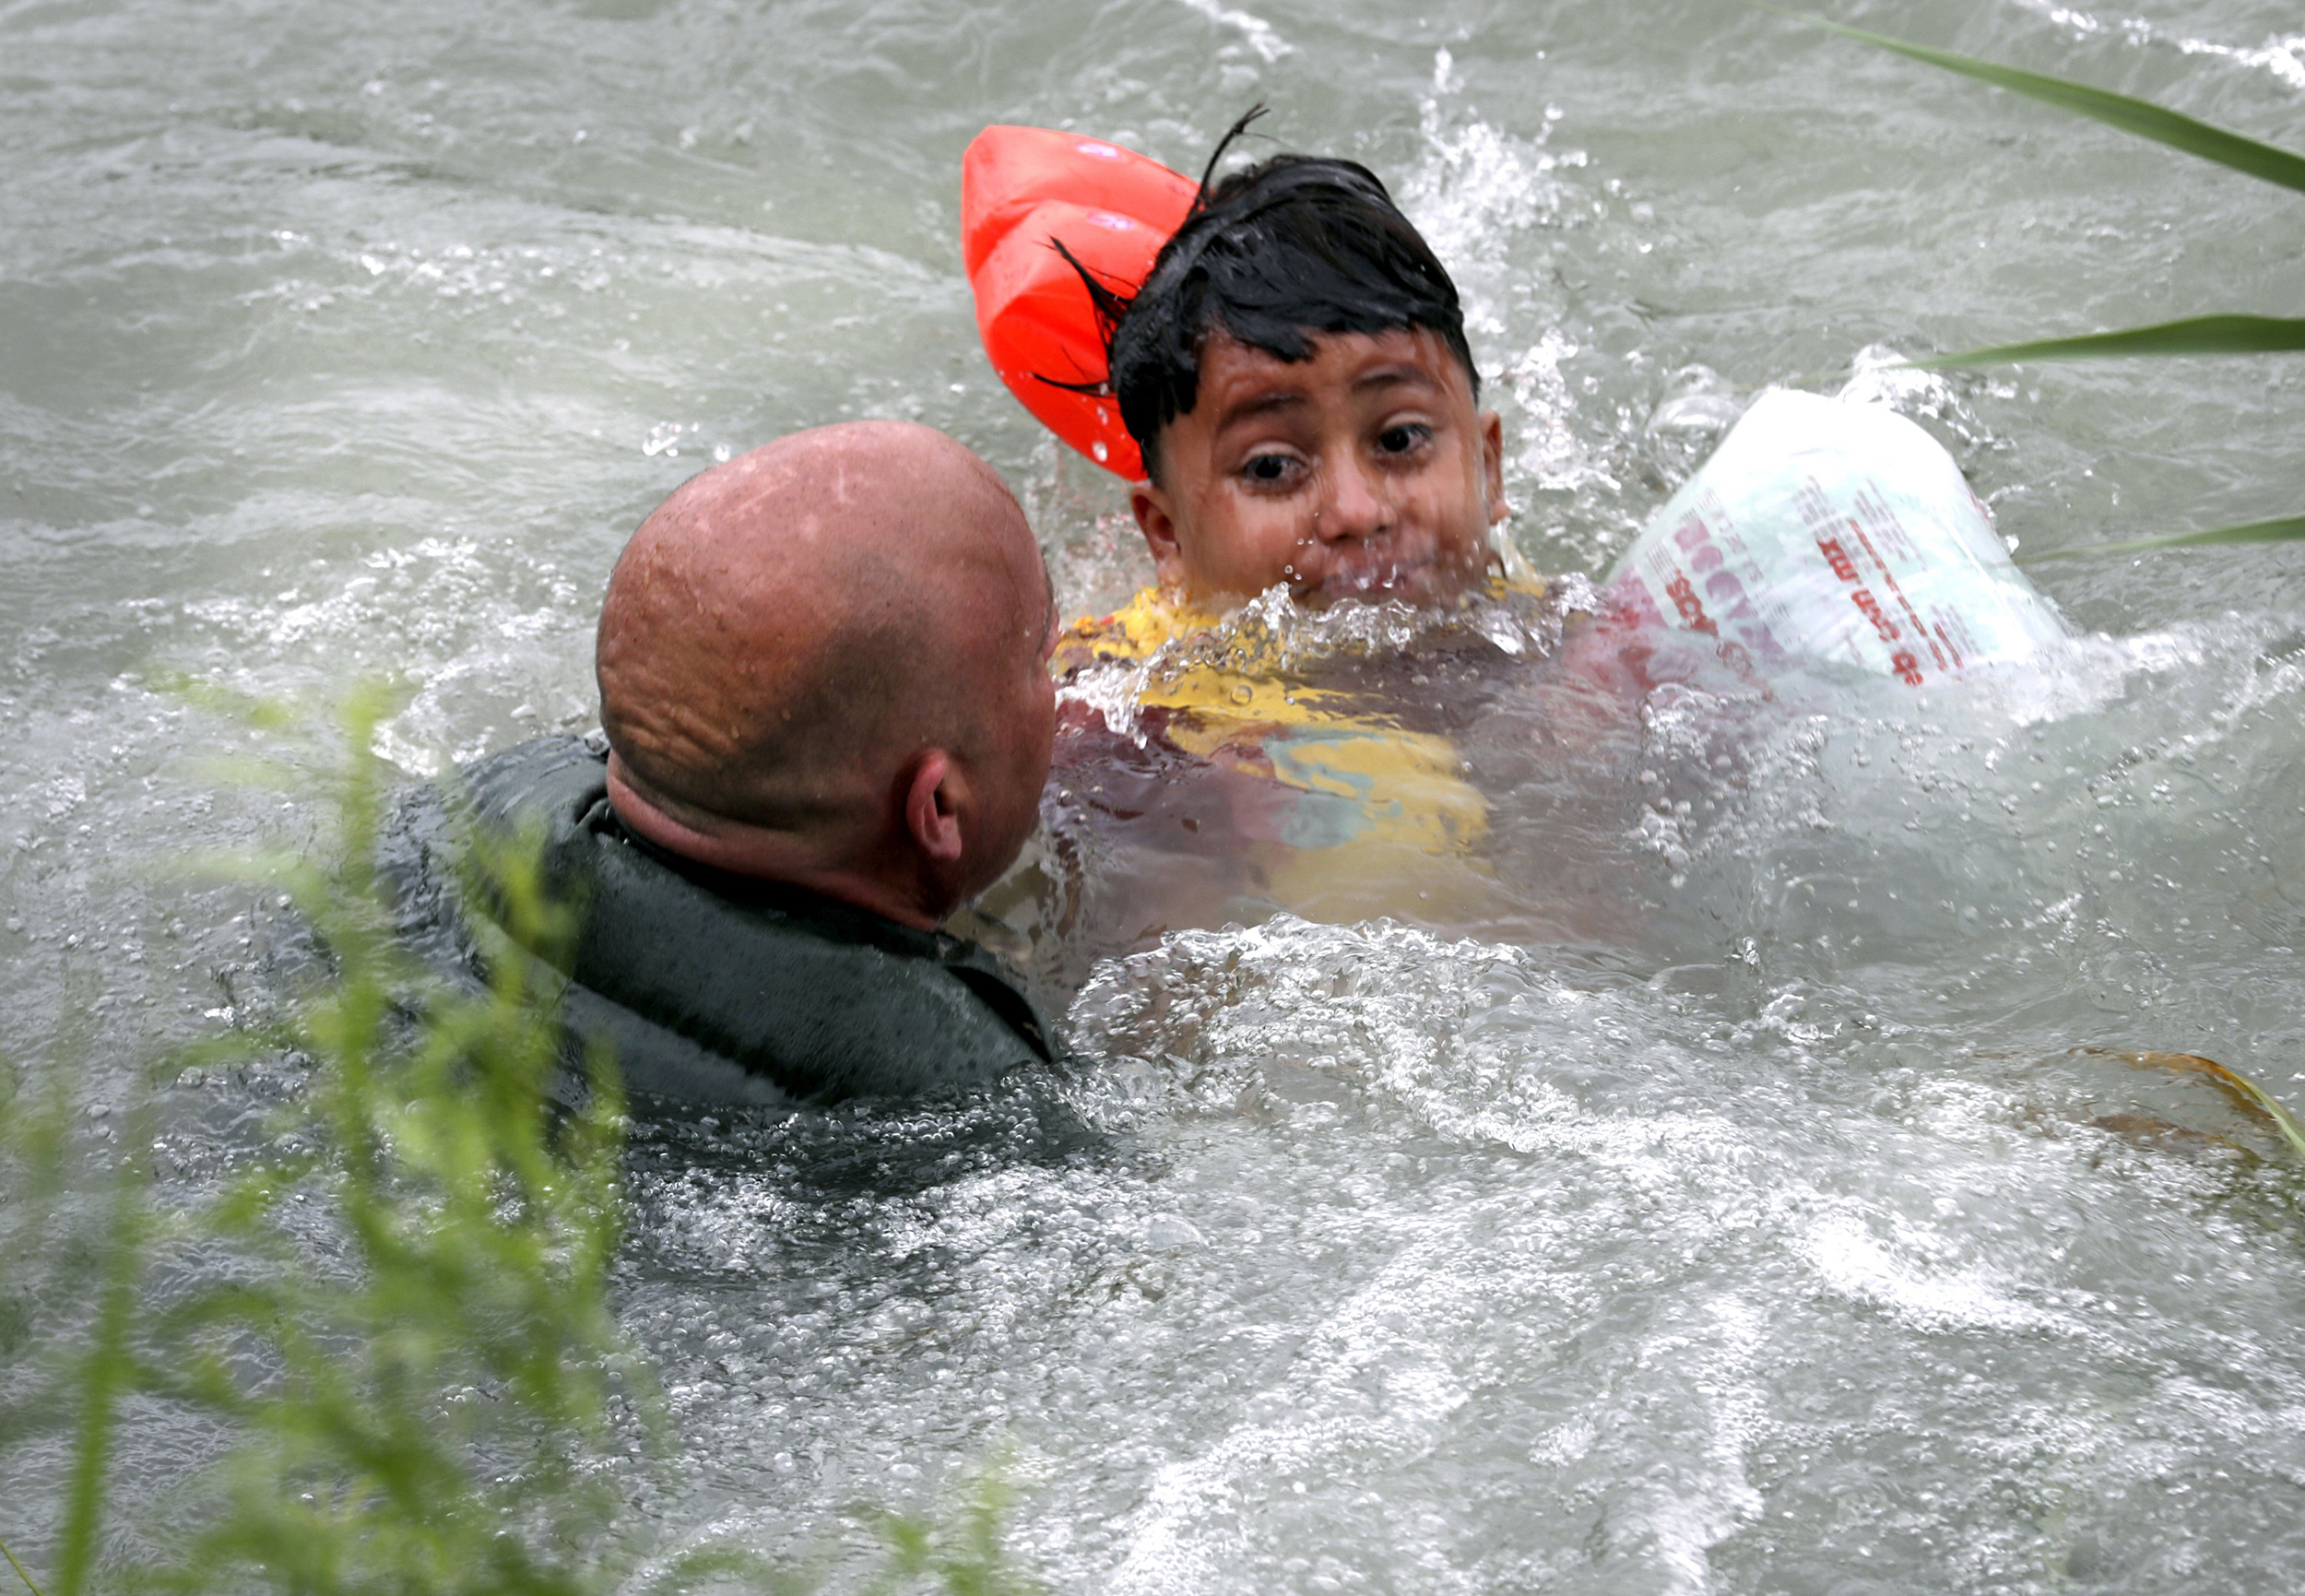 Dramatic-photos-show-Border-Patrol-saving-drowning-migrant-boy